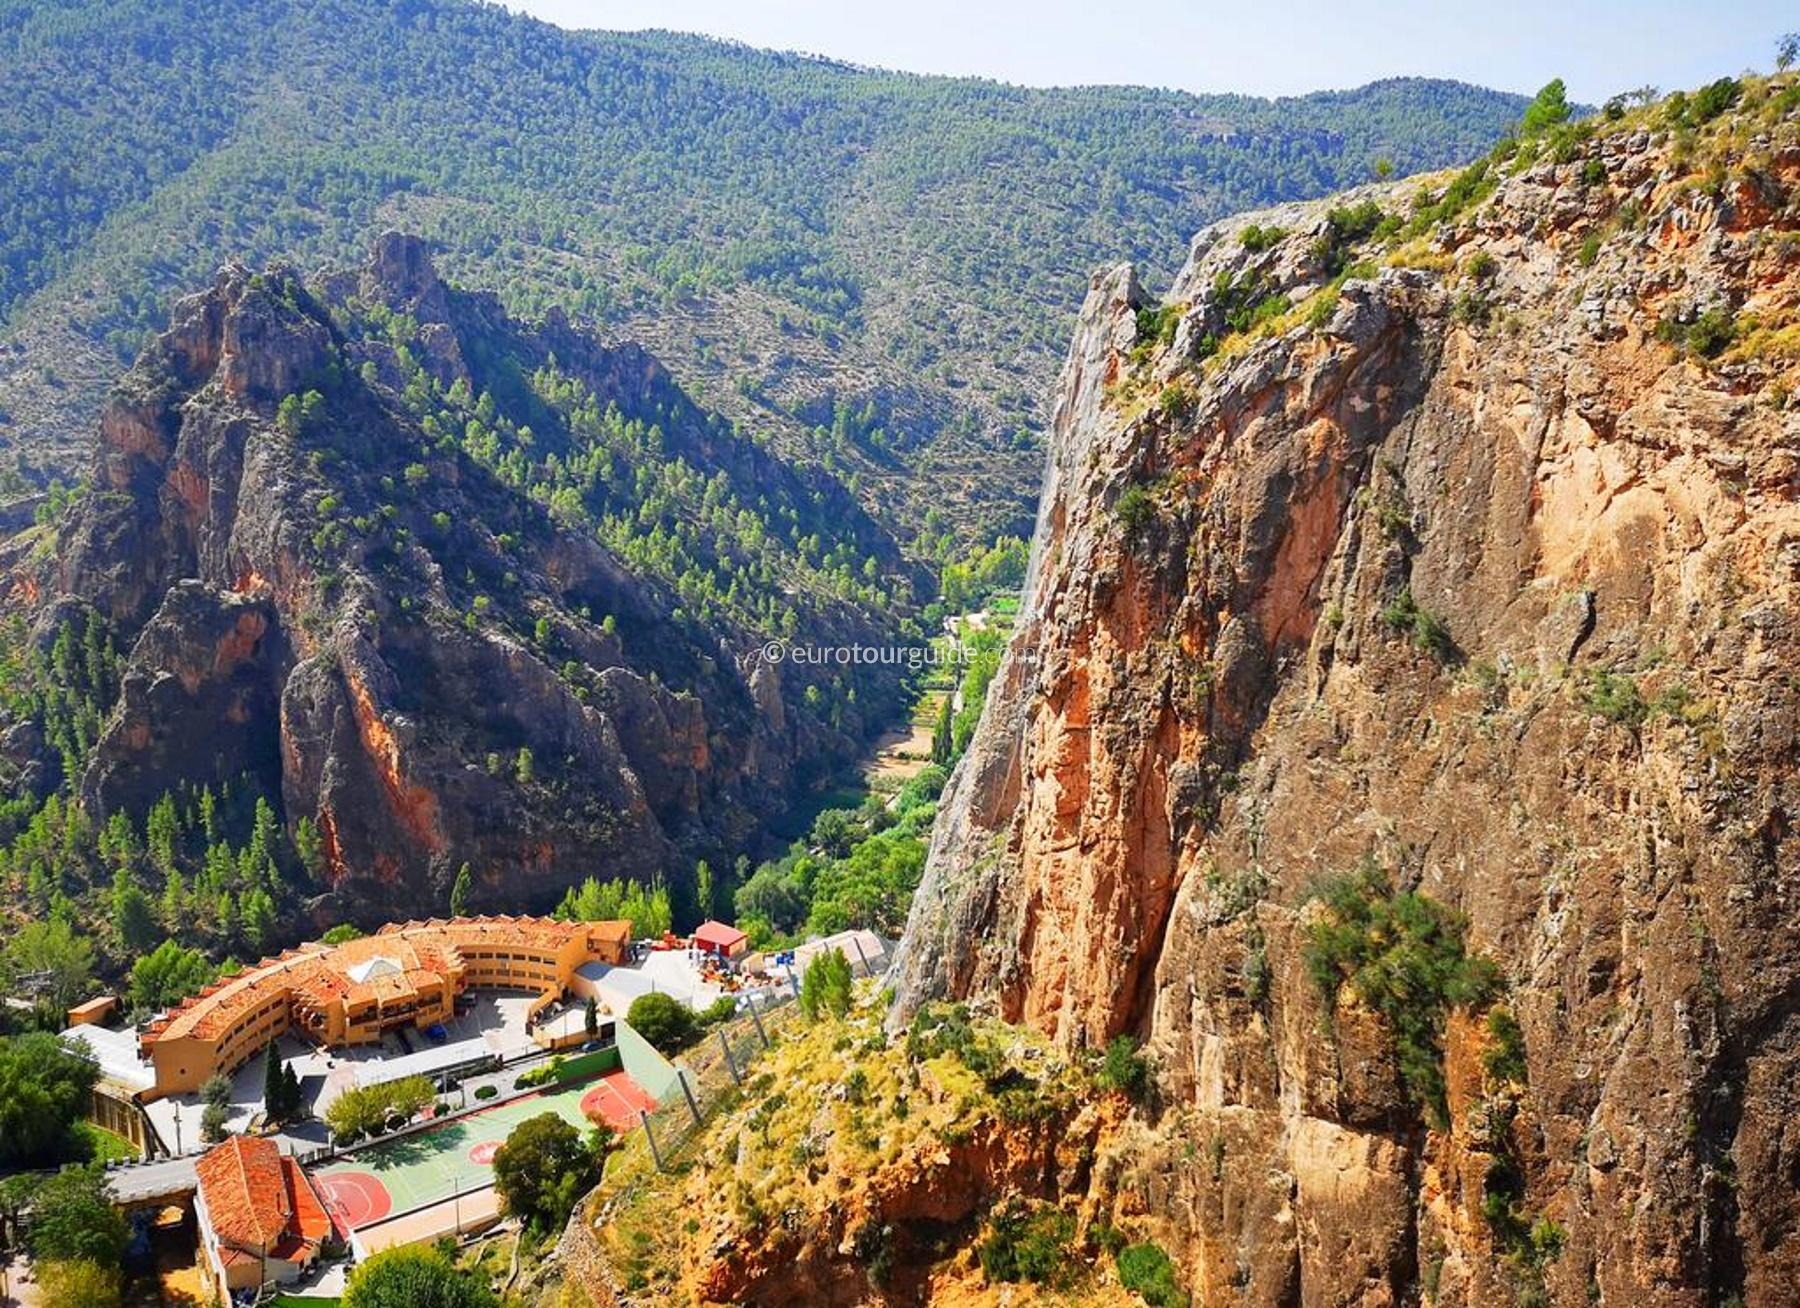 EuroTourGuide Coach Tour 14th-17th September Scenic Escape Ayna